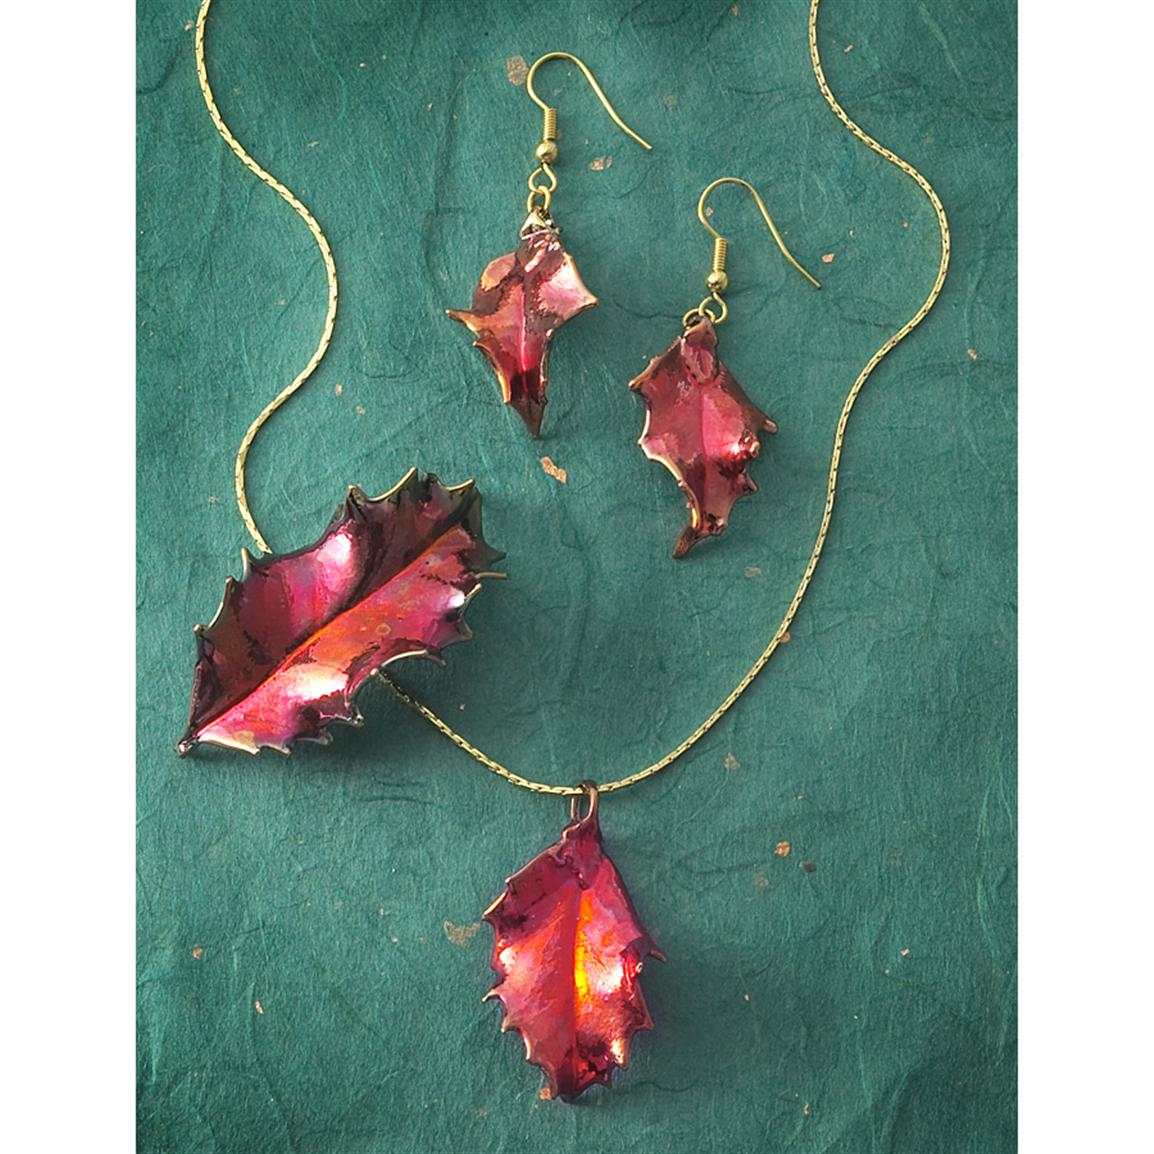 The Rose Lady 4-Pc. Real Holly Jewelry Set, Copper